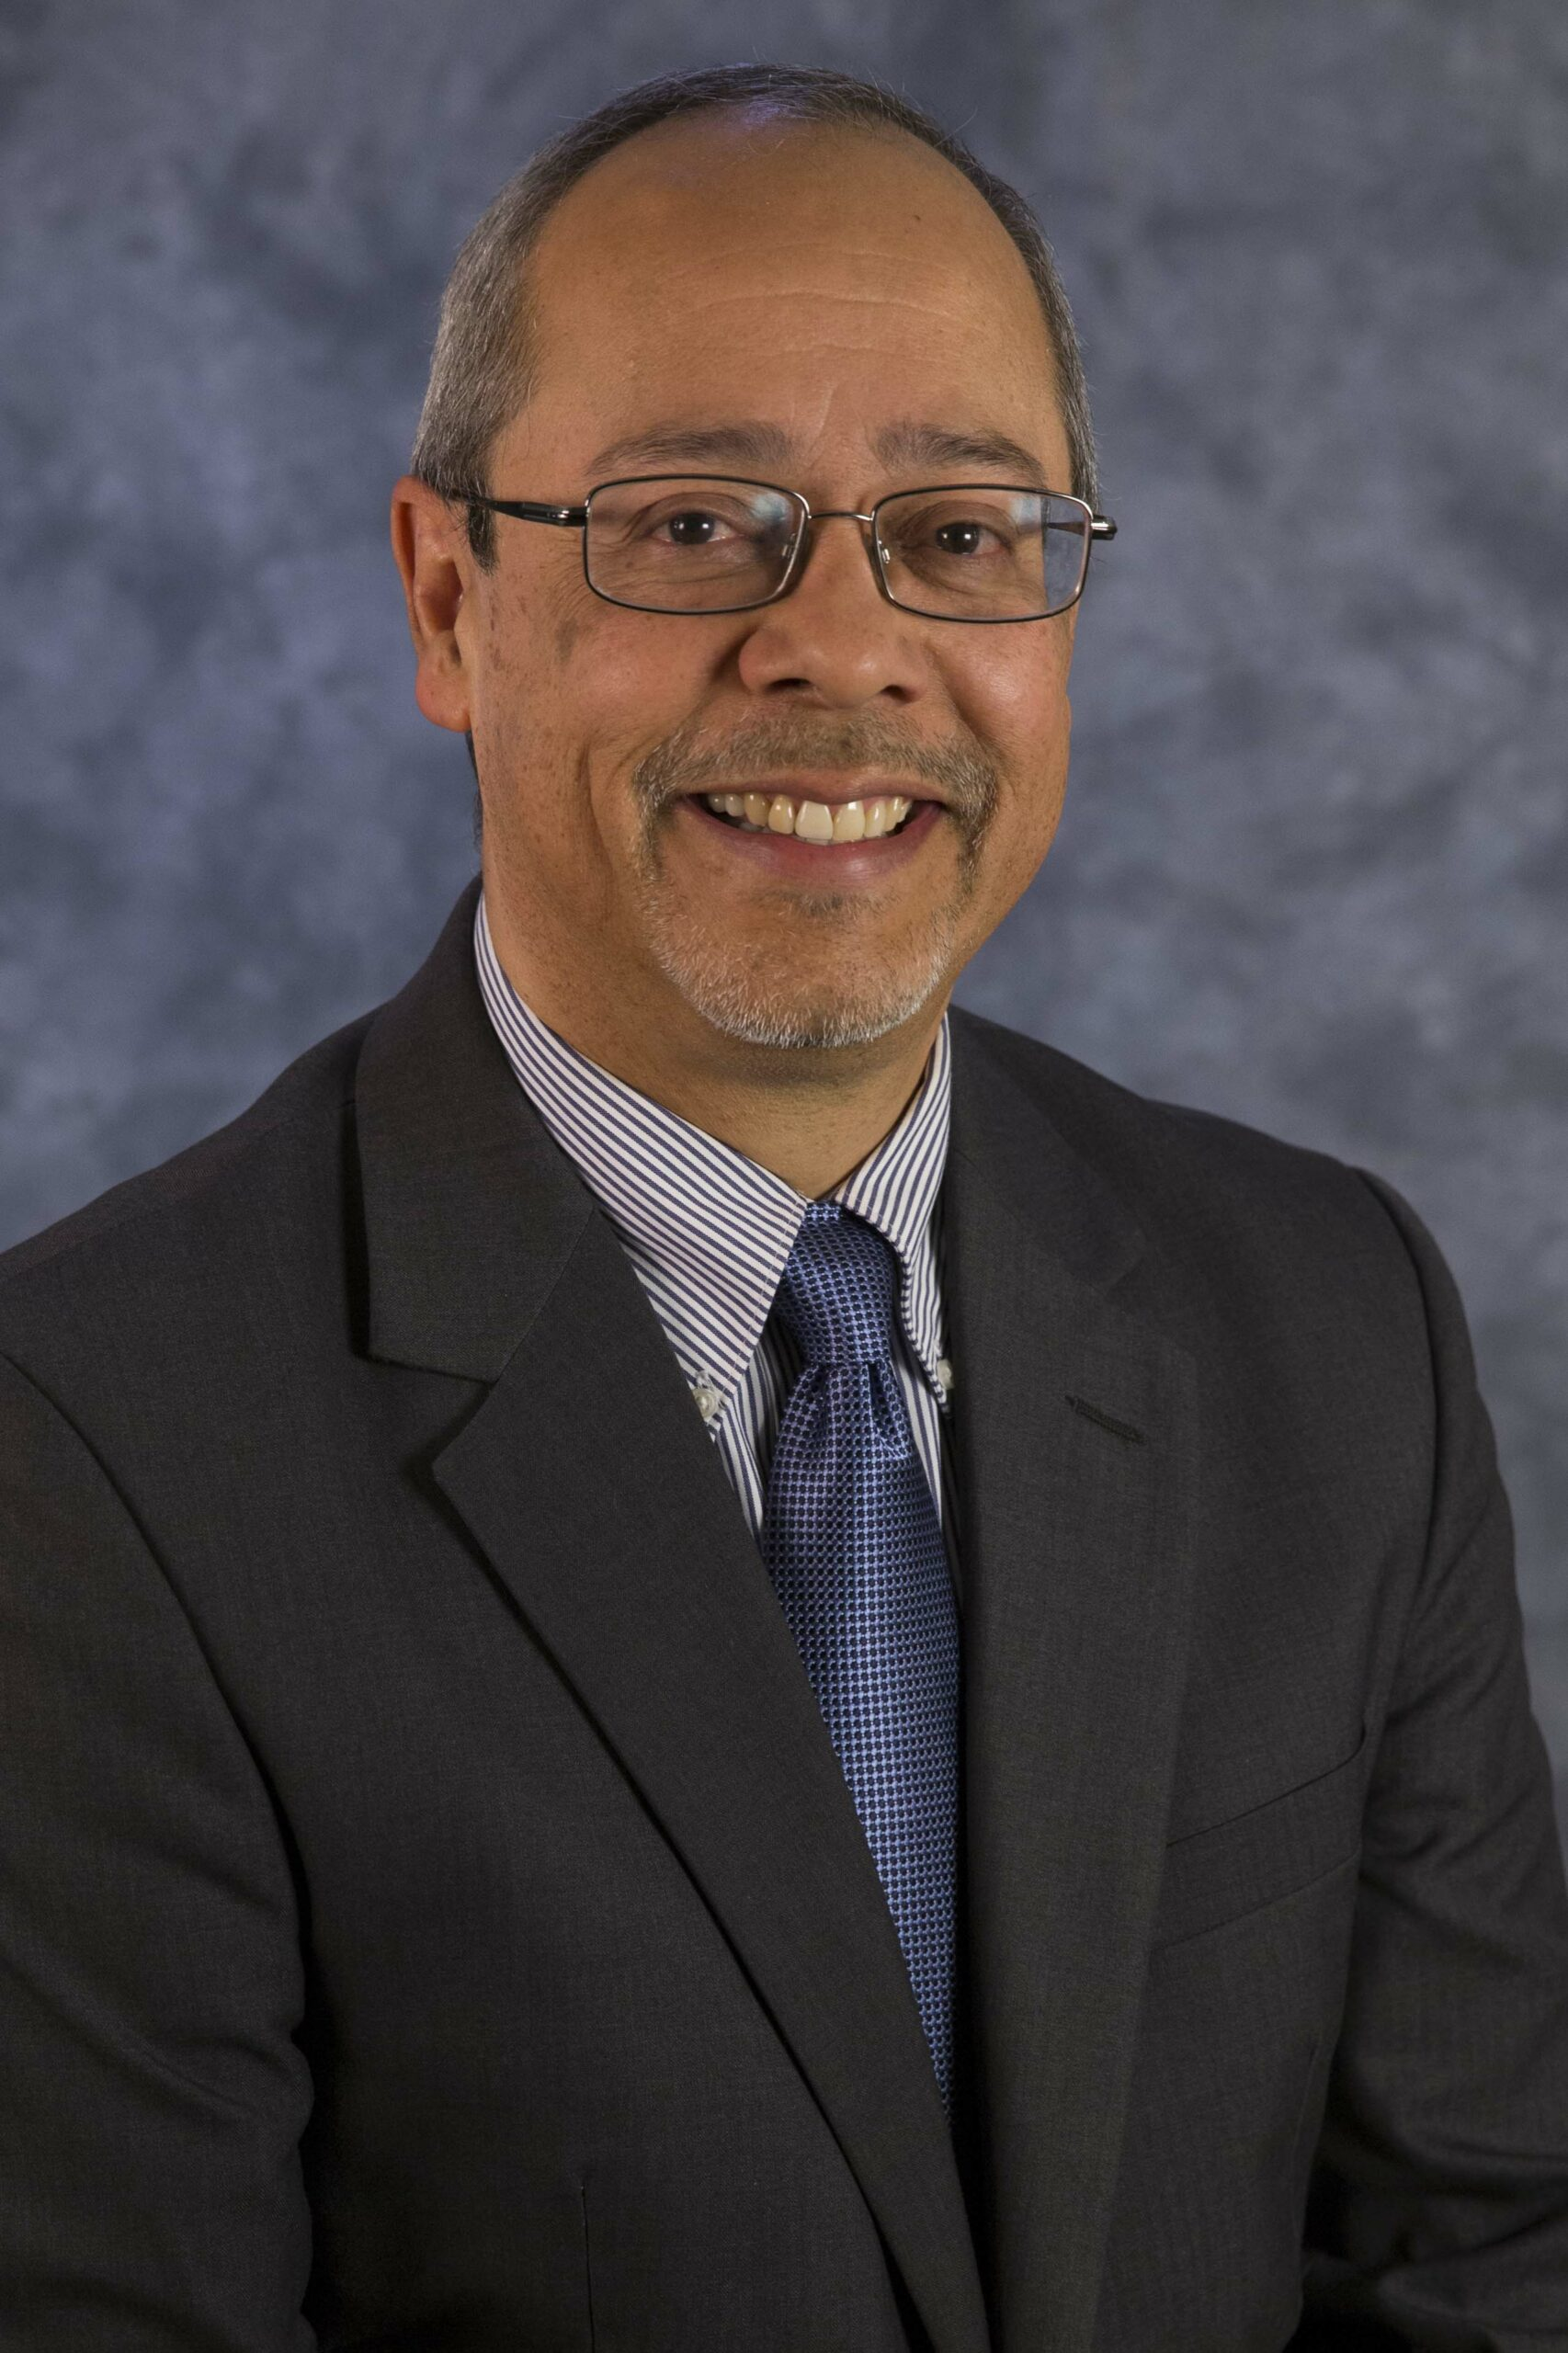 Rafael Canizales has been appointed to a new leadership as the Undergraduate Dean for Academics.